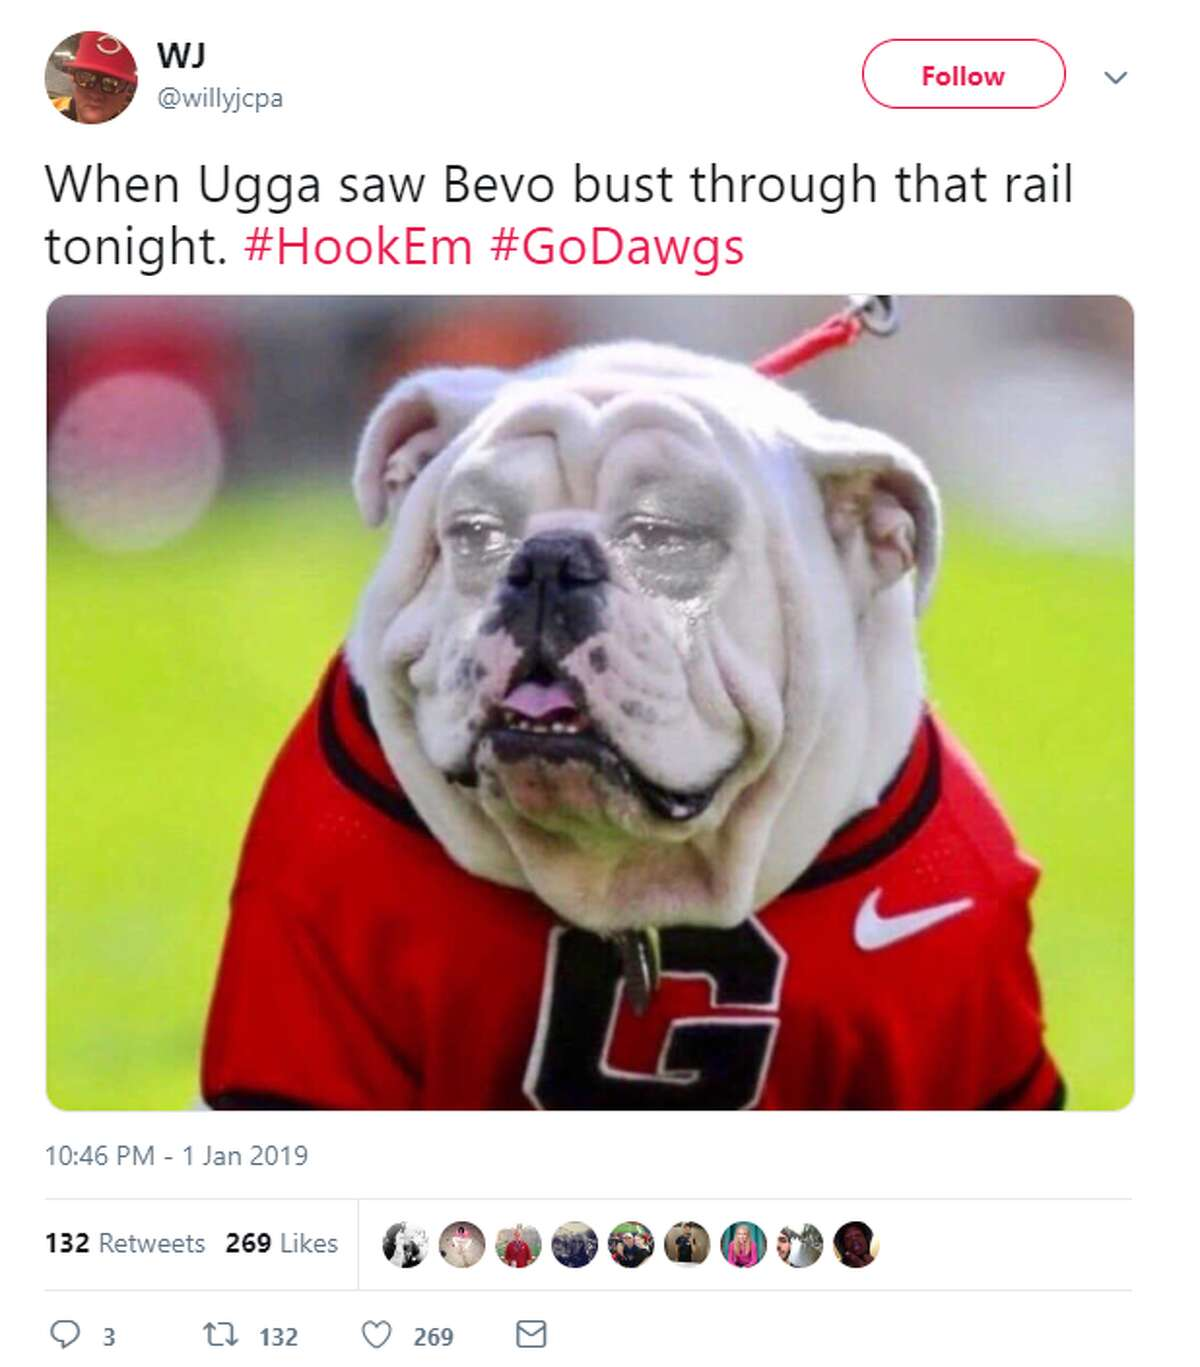 The Sugar Bowl is over, but people are still talking about the moment Texas' Bevo lunged at Georgia's mascot Uga before the game. Here's what they had to say.